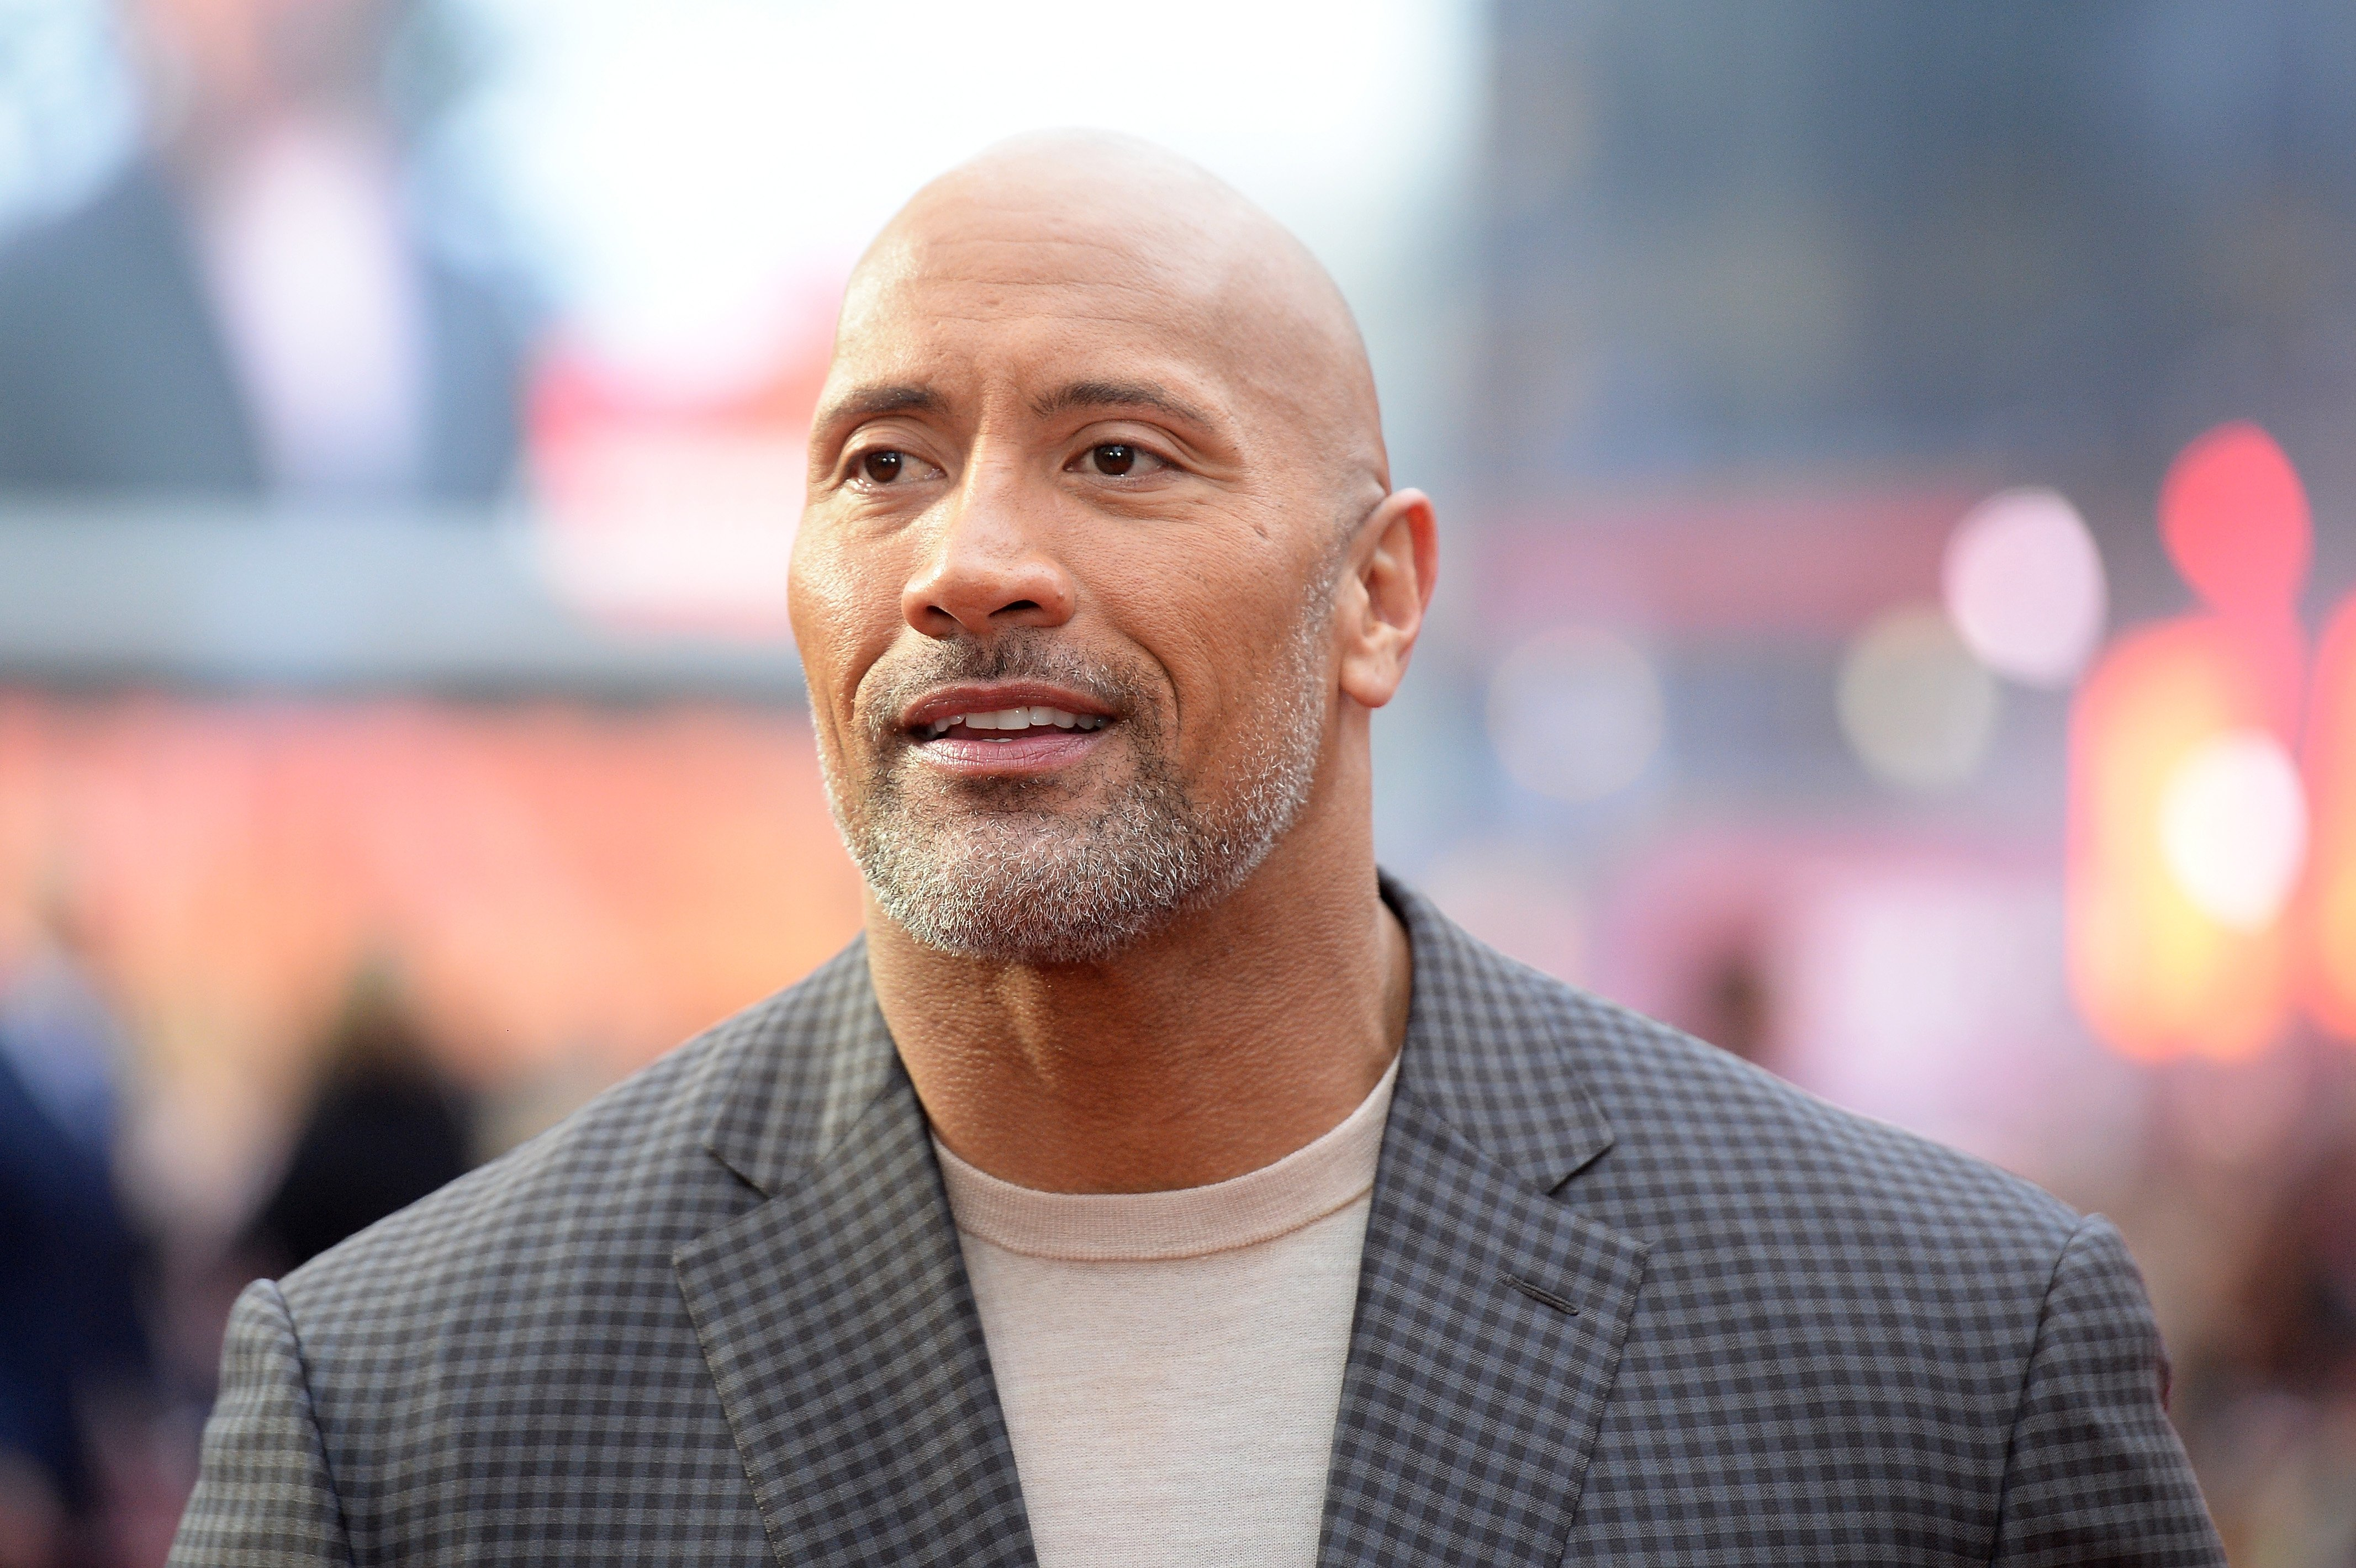 """Dwayne Johnson during the European premiere of """"Rampage"""" in April 2018. 